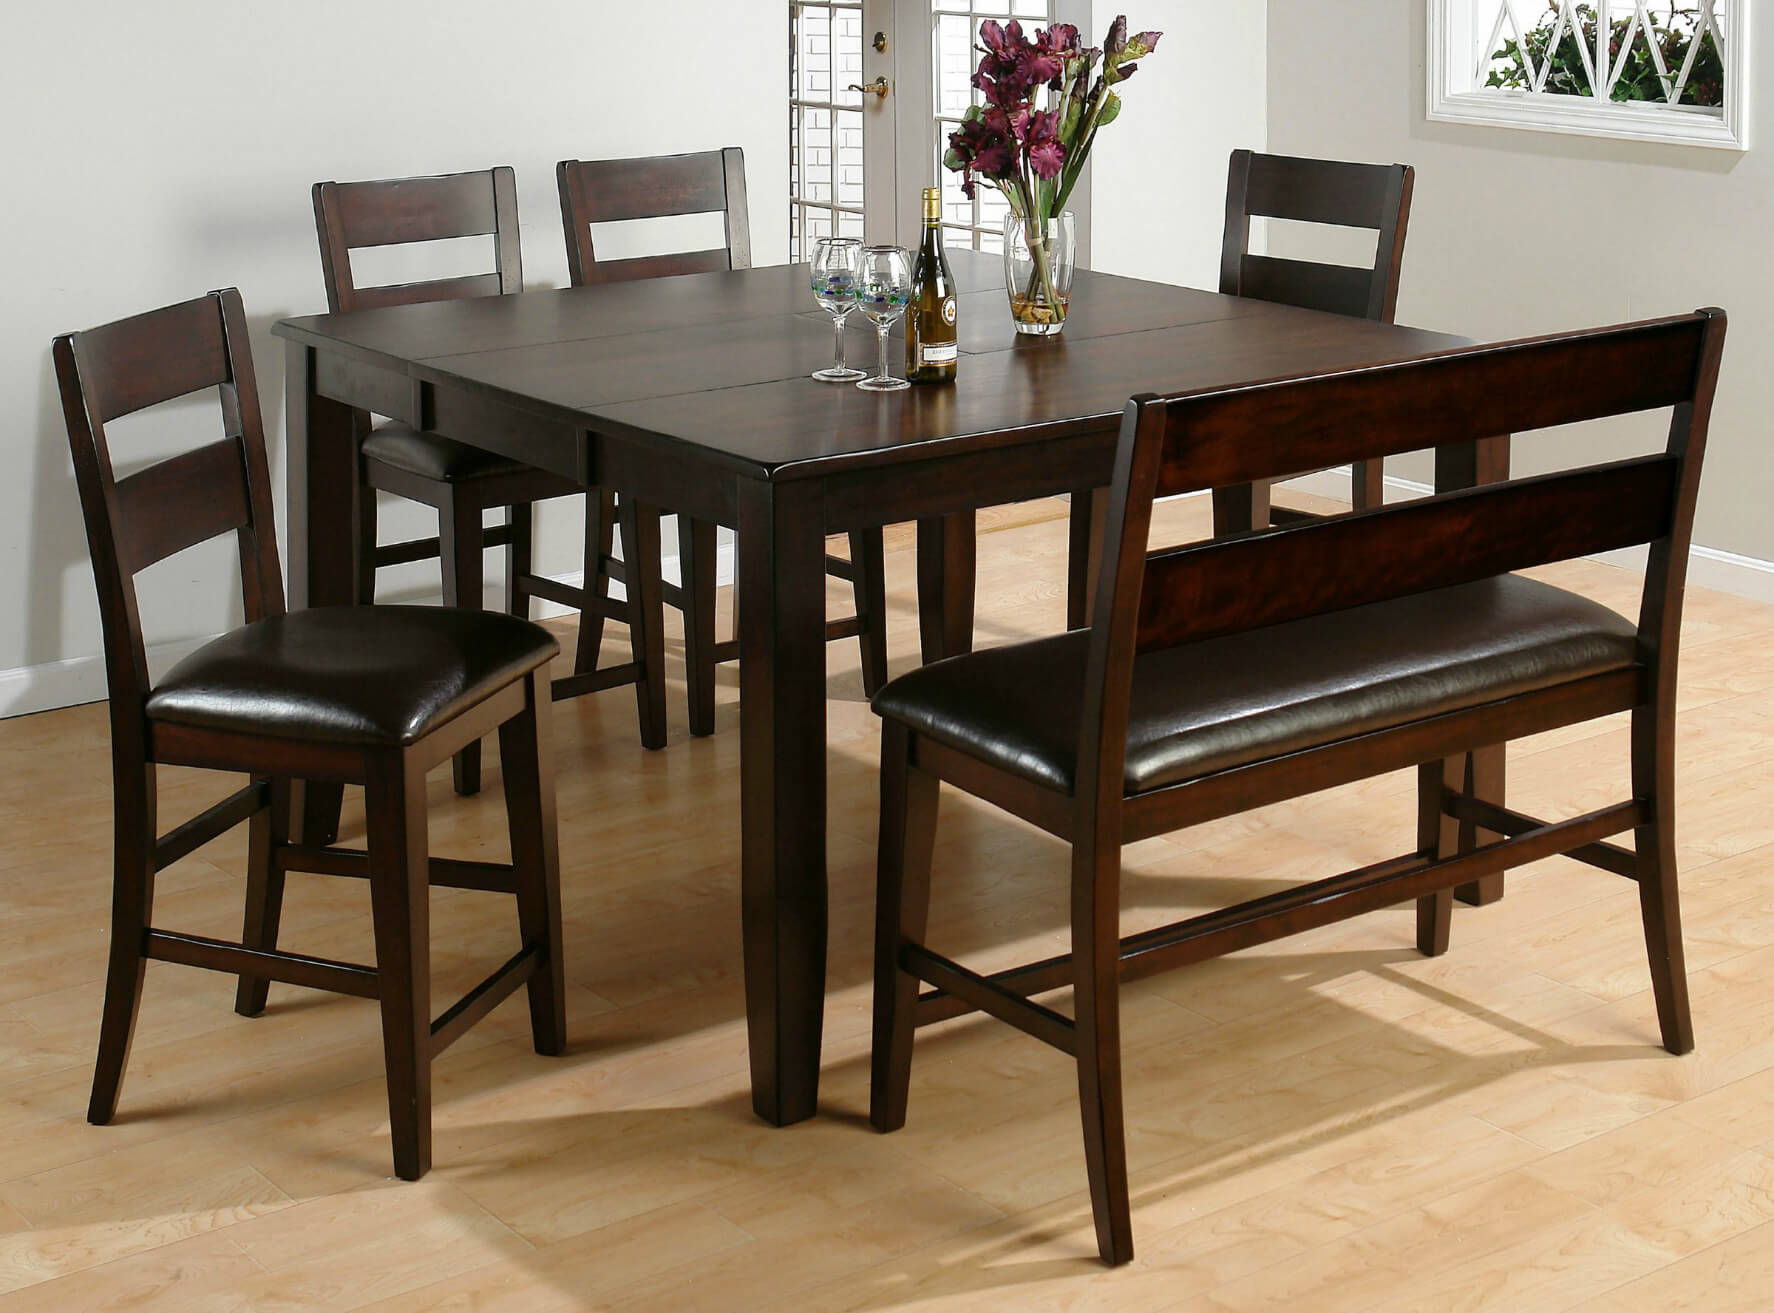 Dining room table bench set